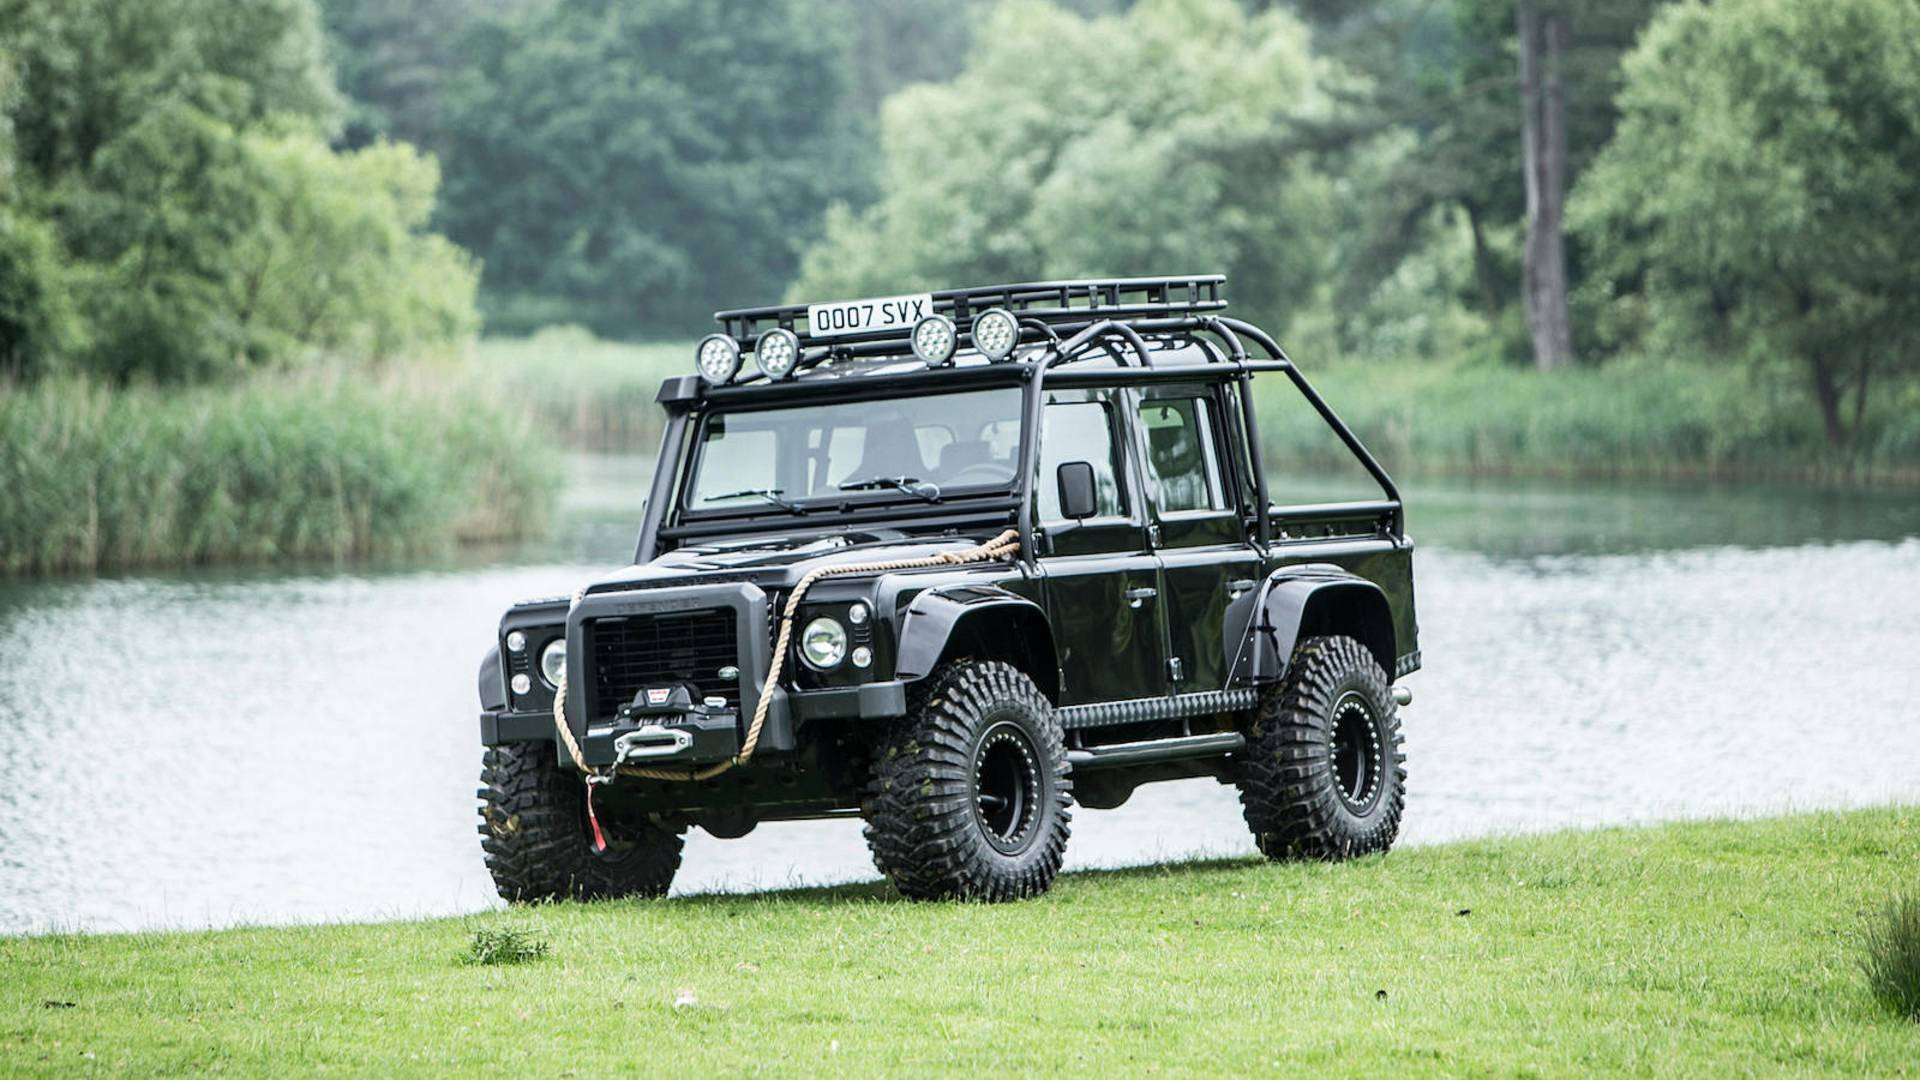 land-rover-defender-svx-from-james-bond-spectre-film (29)